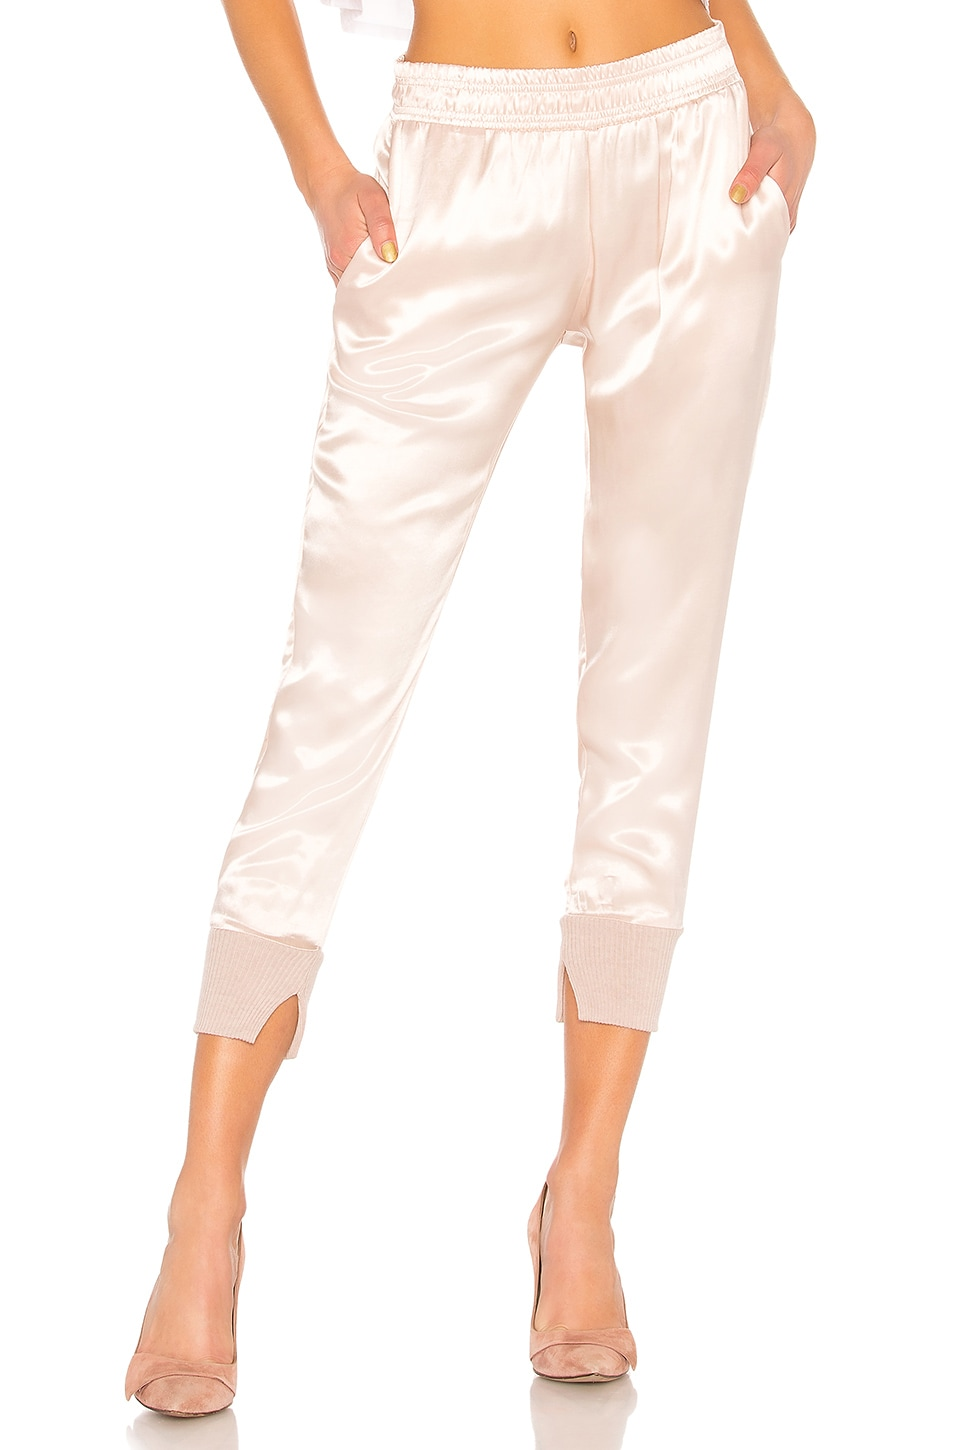 Enza Costa Cuffed Jogger Pant in Pink Beige